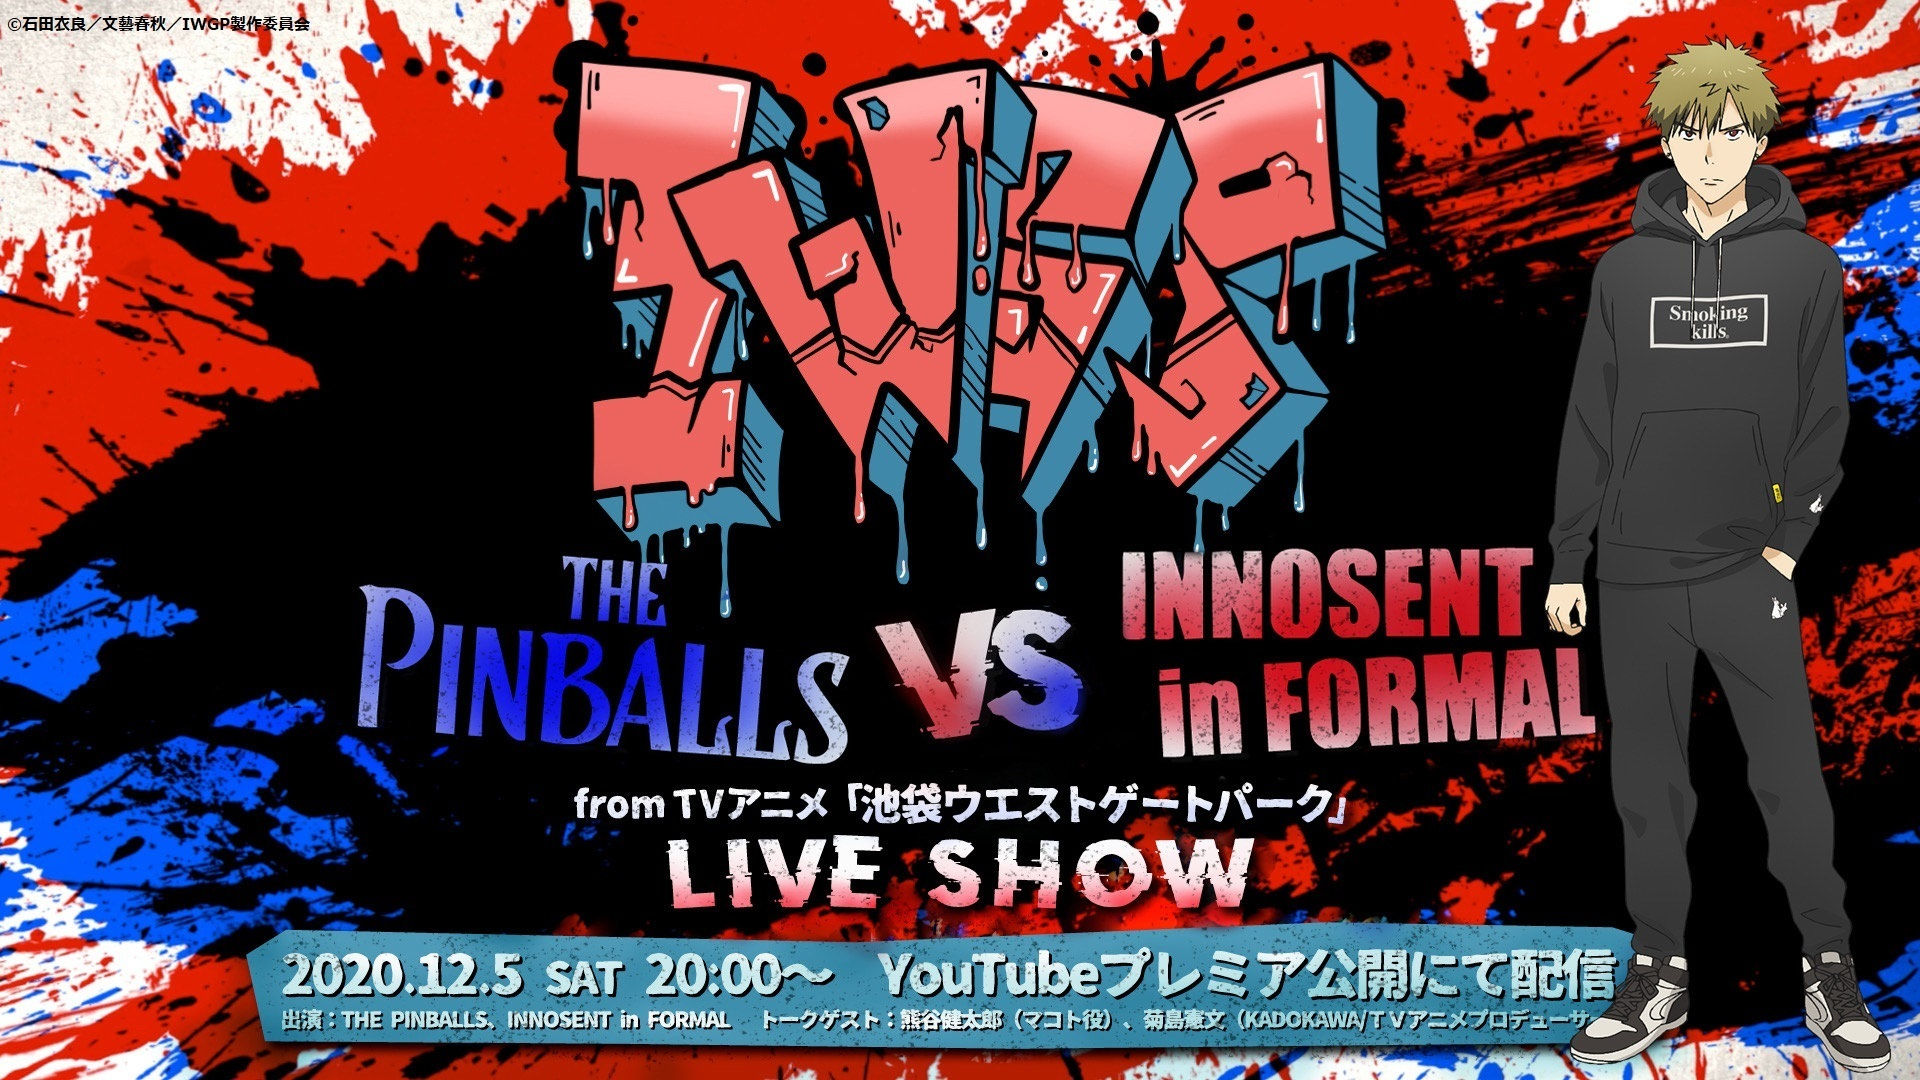 THE PINBALLS vs INNOSENT in FORMAL from TVアニメ「池袋ウエストゲートパーク」LIVE SHOW